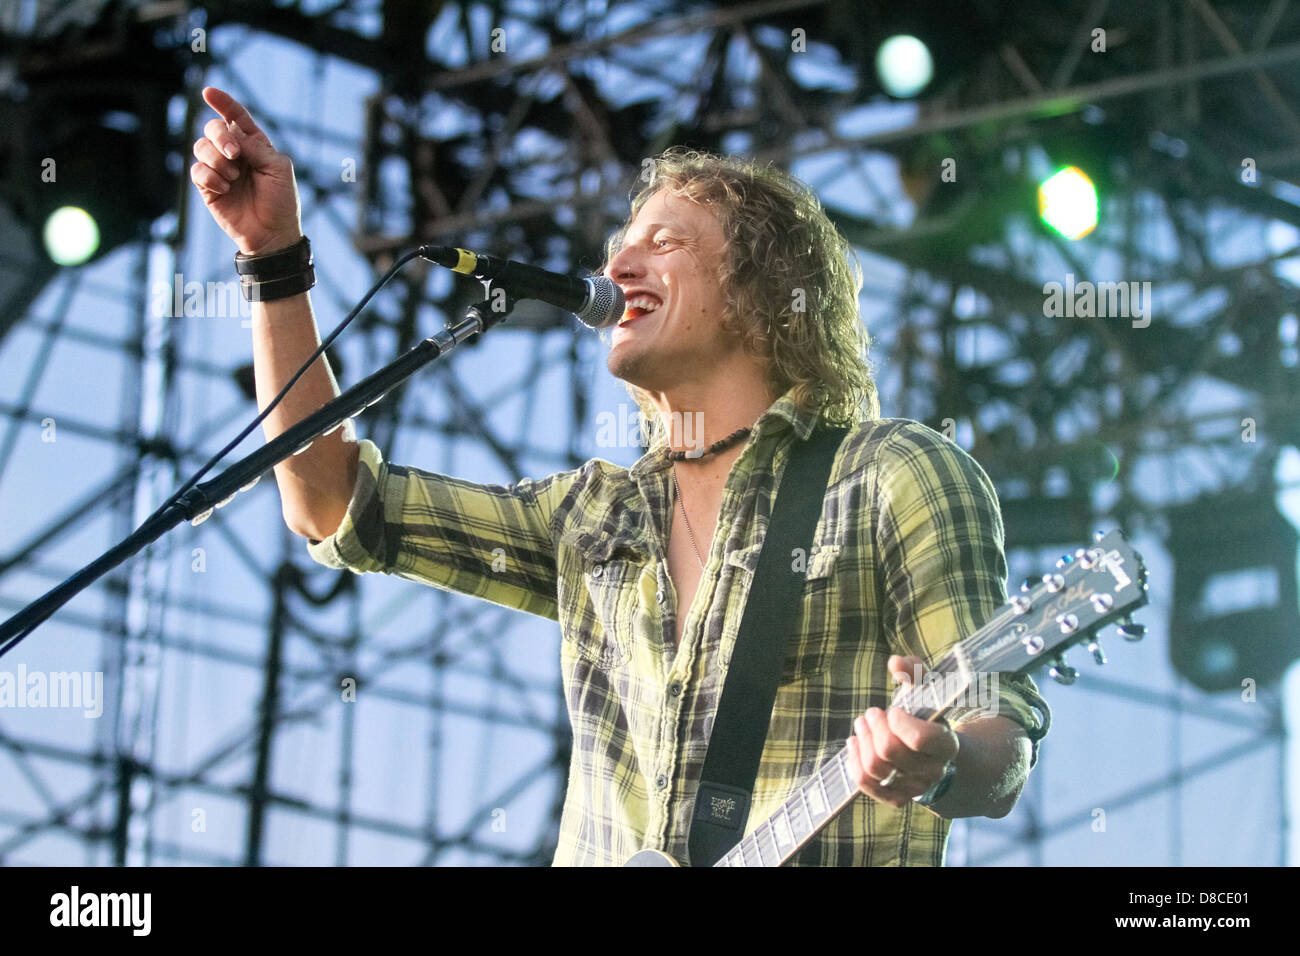 Brett Scallions of Fuel sings at Musikfest 2011. - Stock Image